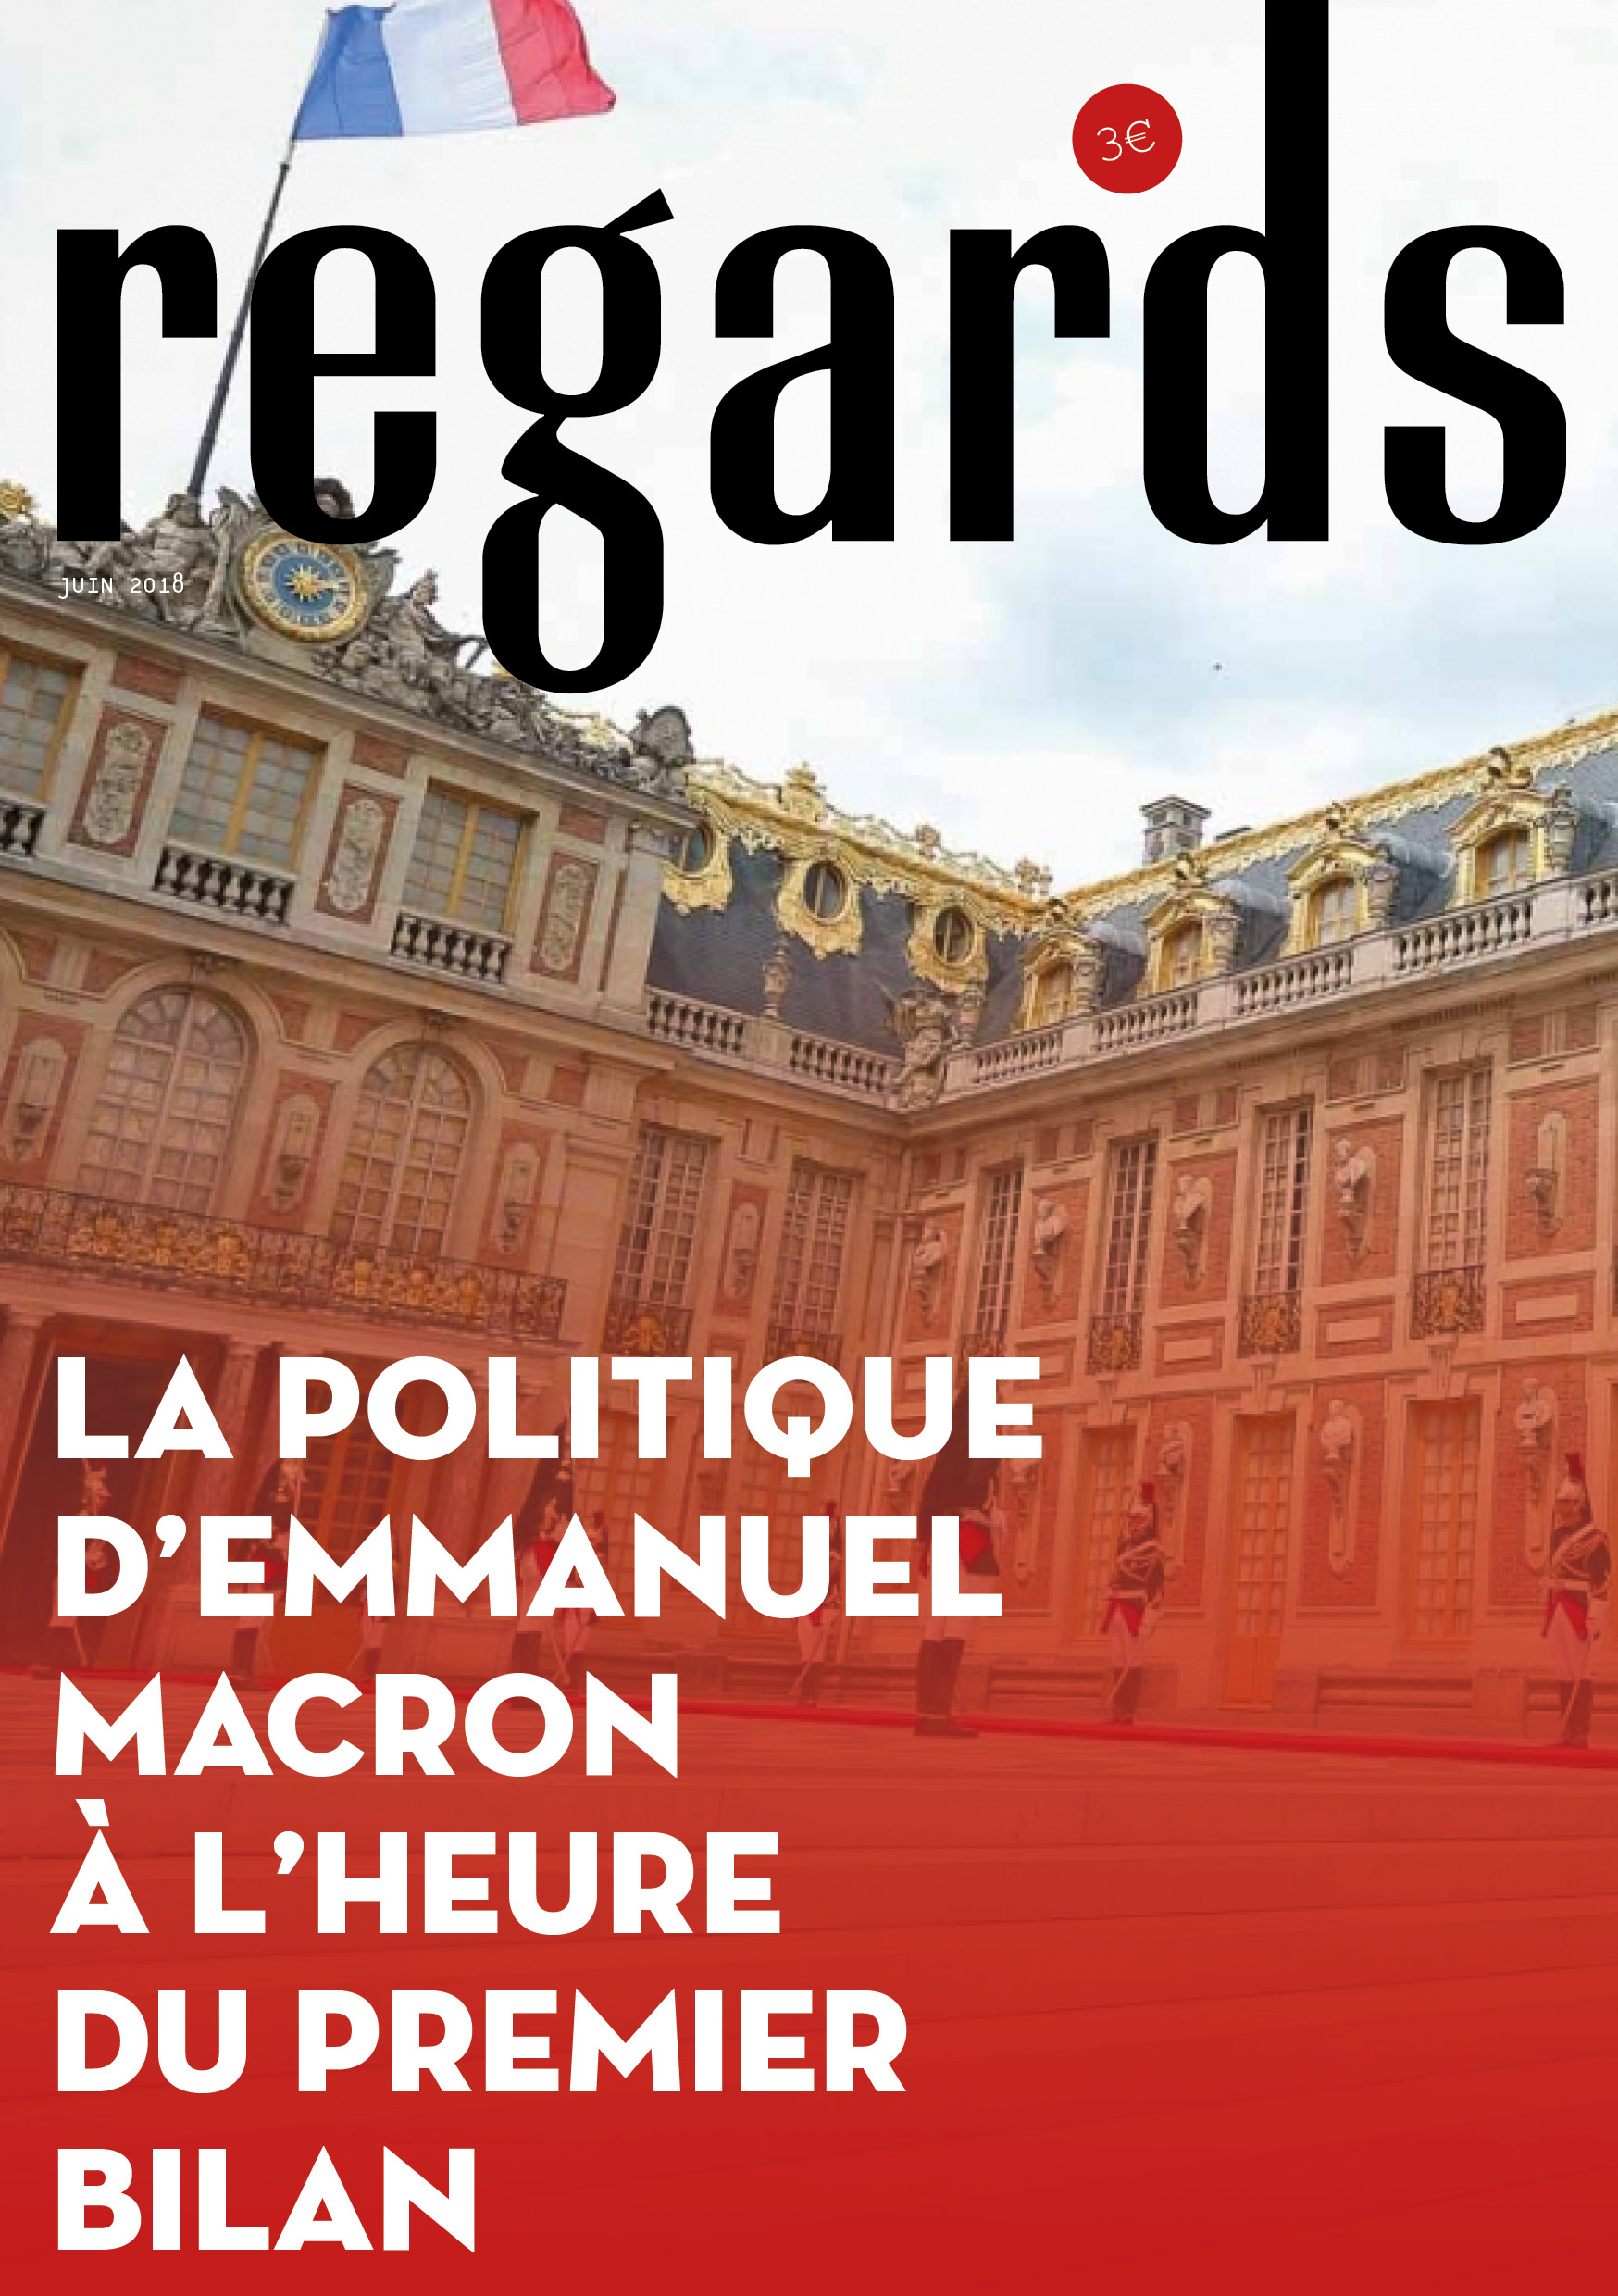 Regards   La fabrique de la politique 67608334b35